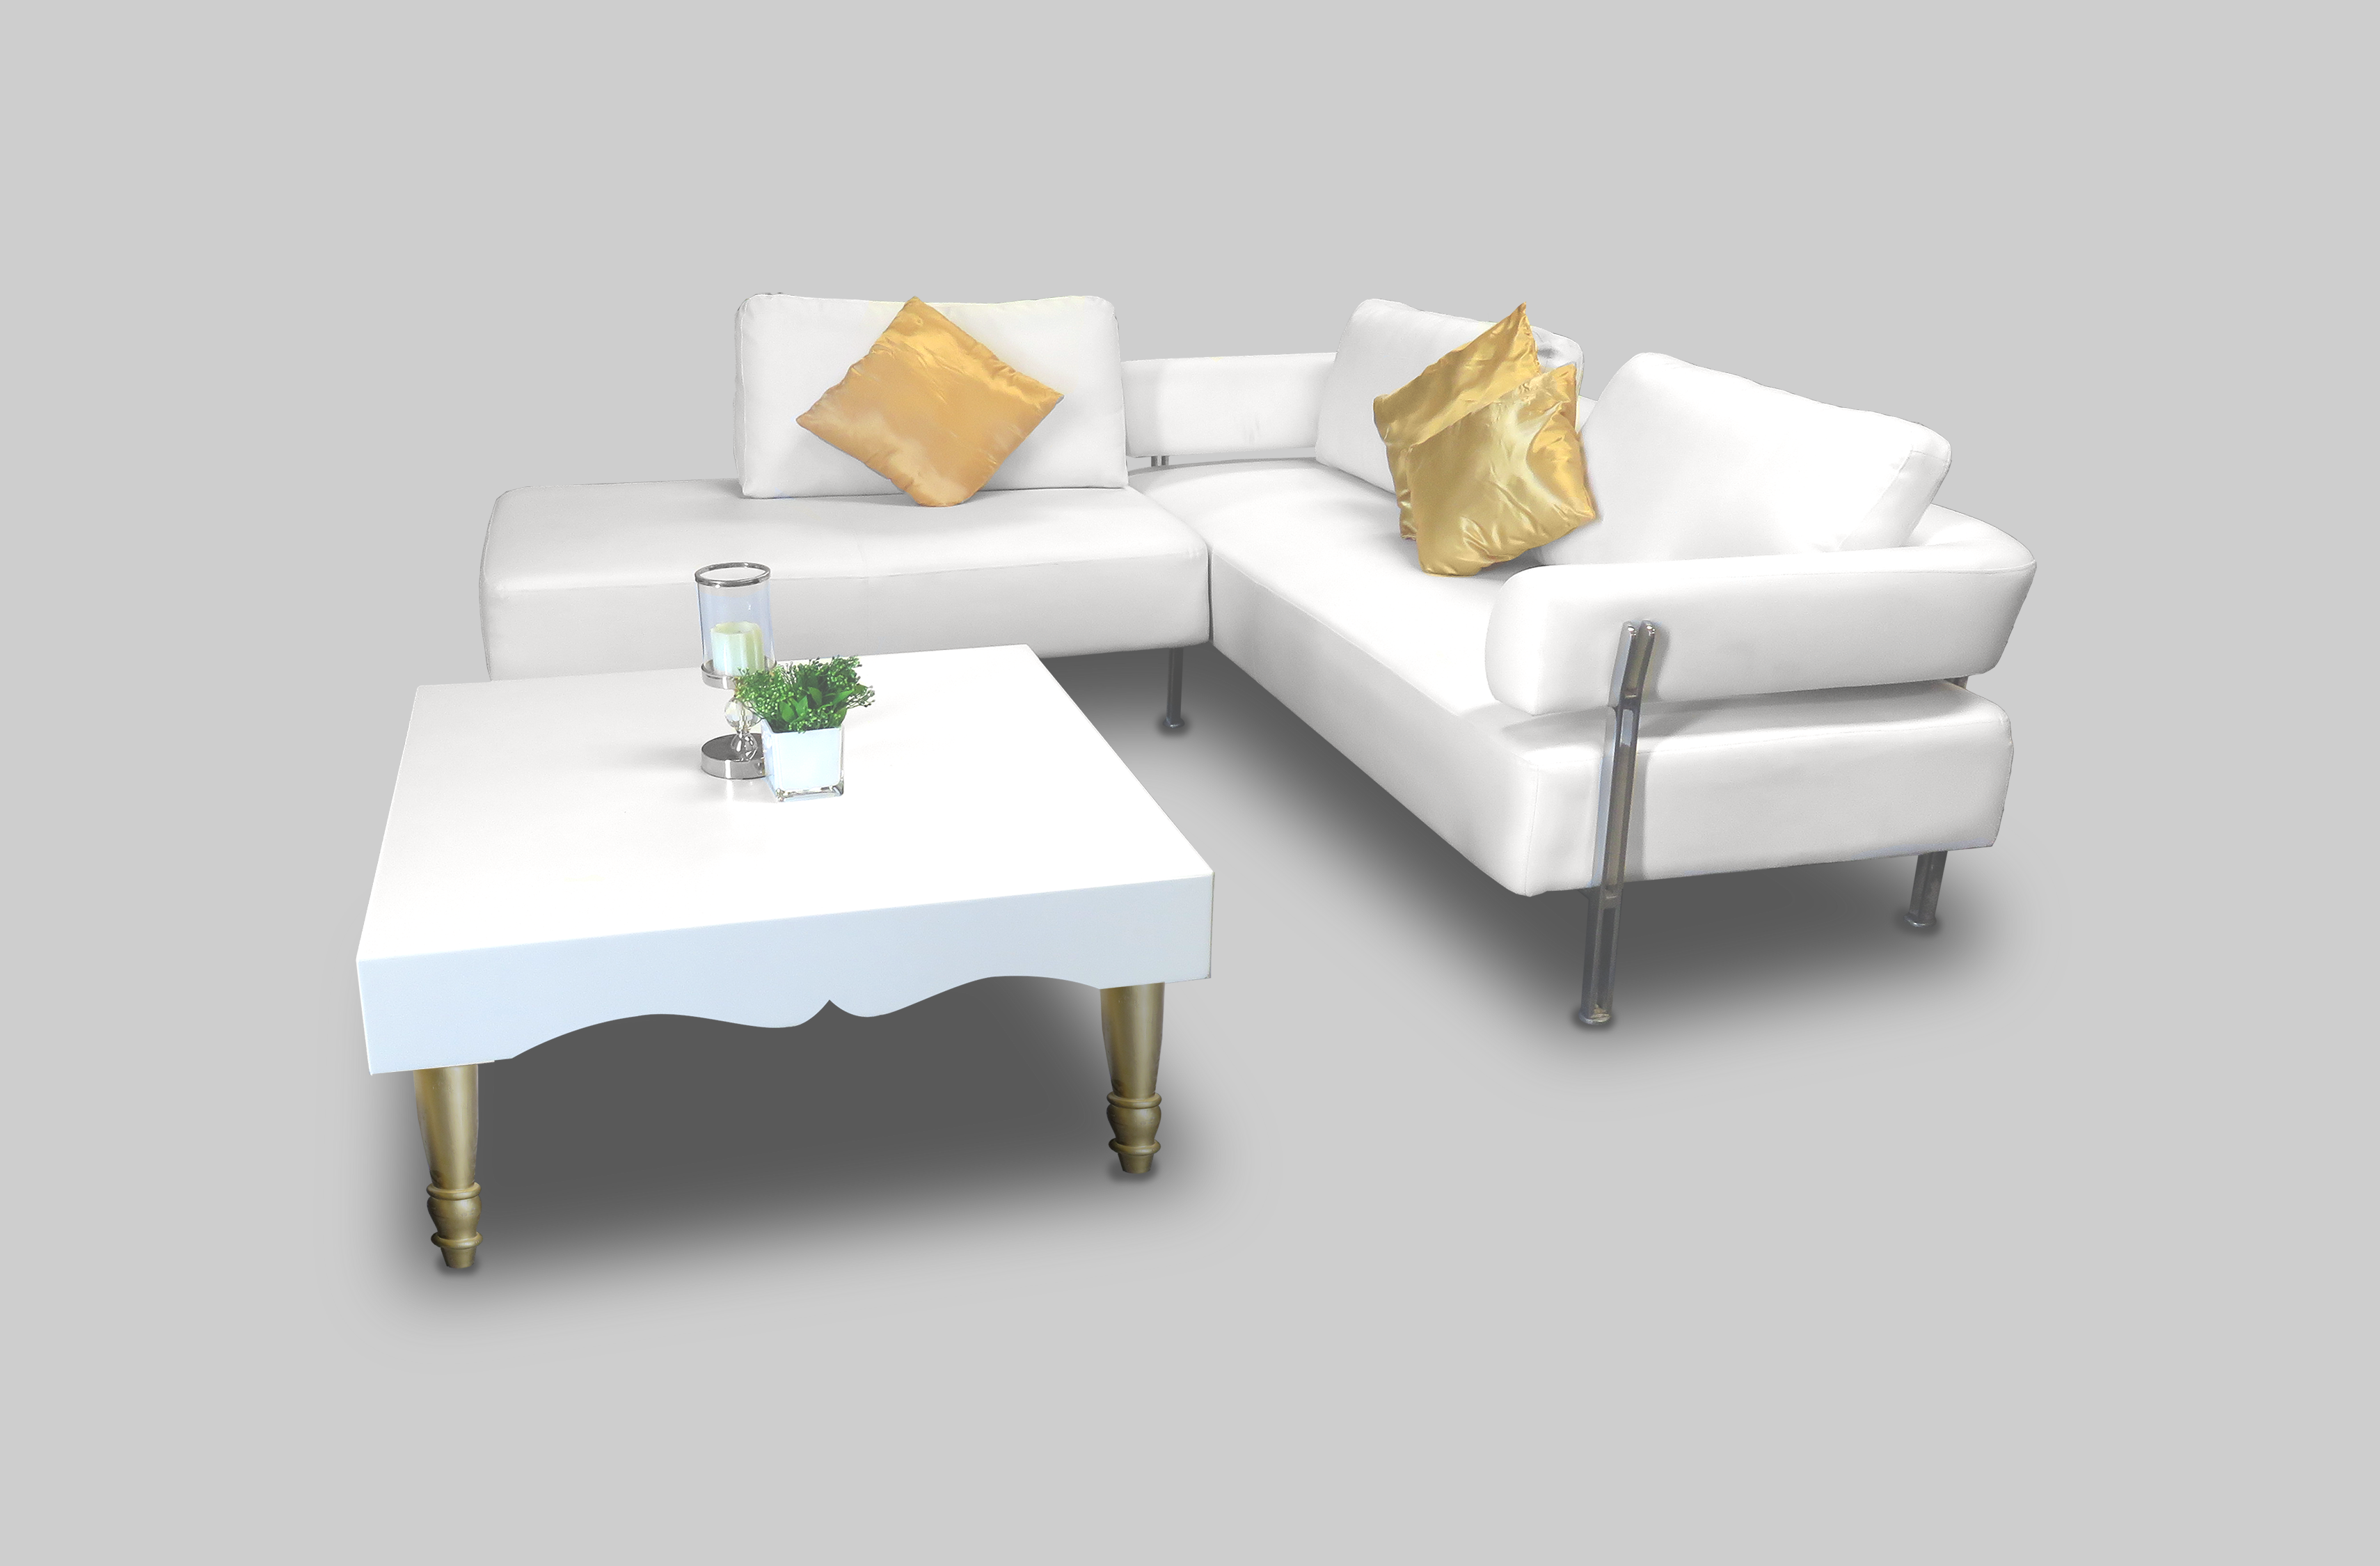 Avalon Chic Square Gold Coffee Table for rent or sale in Dubai